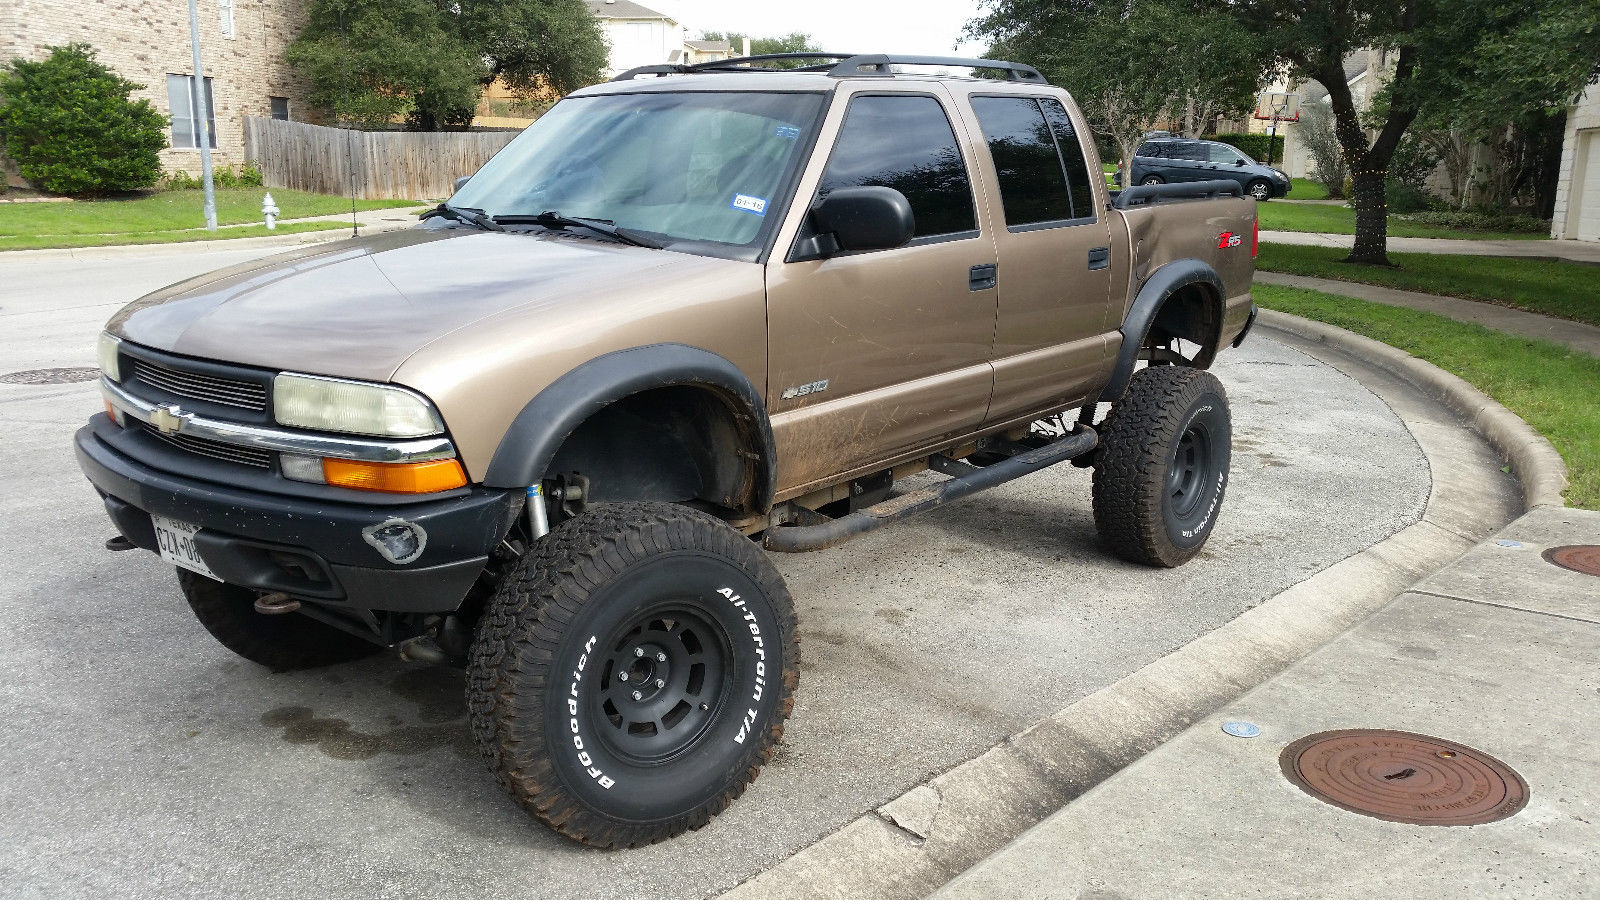 Chevrolet Baja S Monster Truck Lifted Off On Road Machine X Bfg Superlift For Sale on Chevy V6 Engine Problems